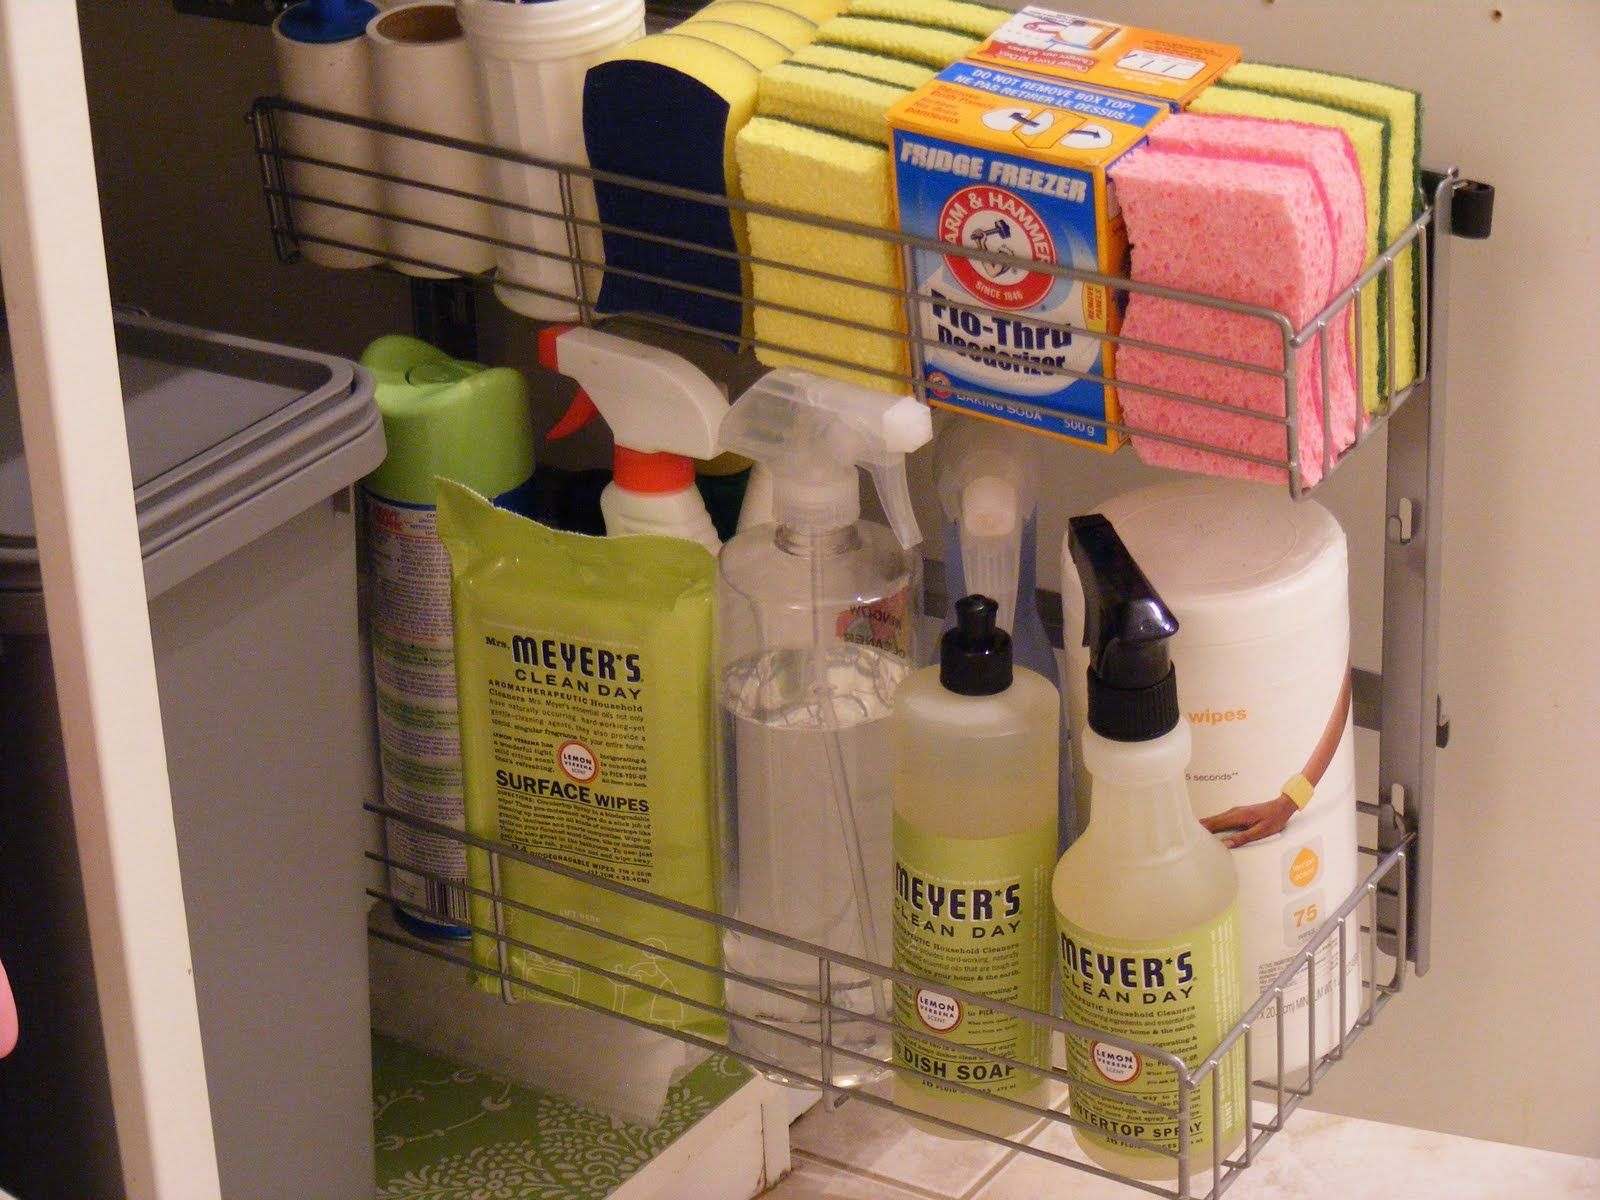 Under Kitchen Sink Organizer Bakers Racks For Organization Wire Shelving Unit From Ikea S Rationell Line